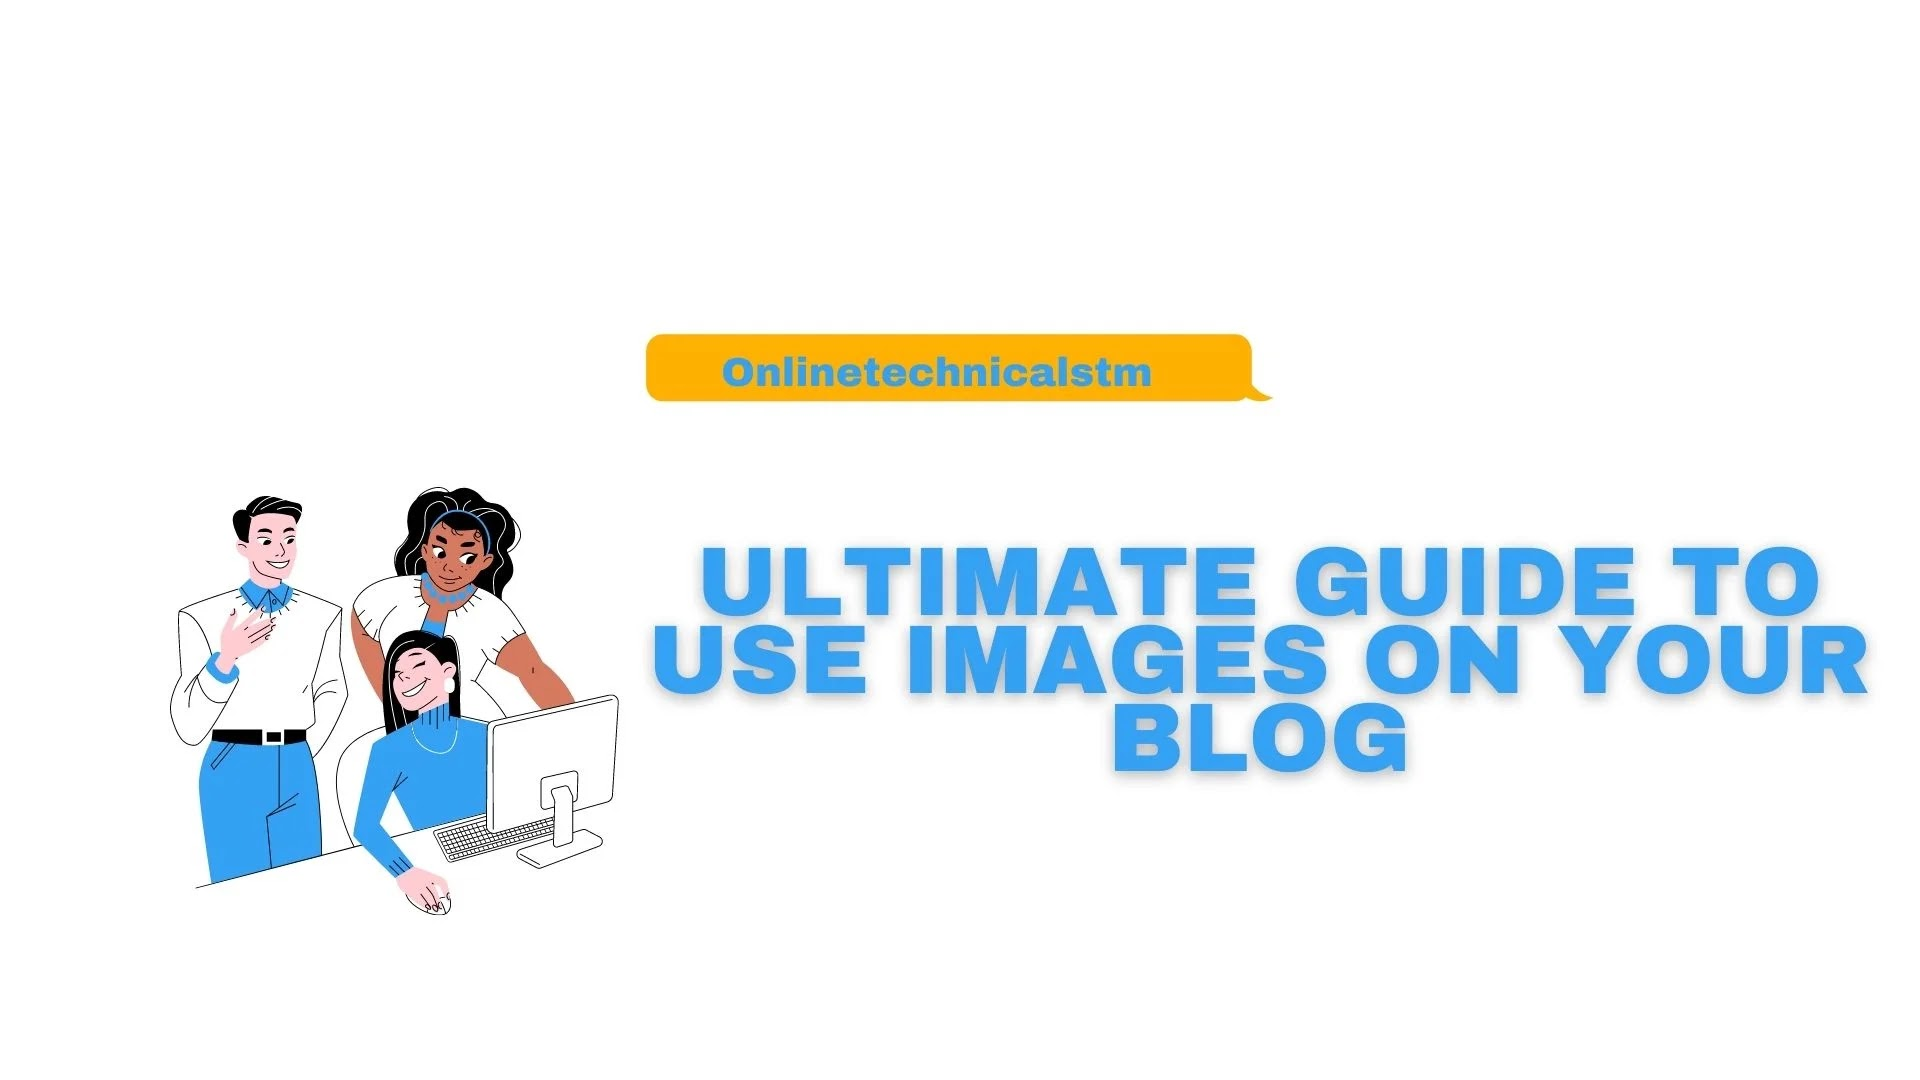 Online Ultimate Guide to Use Images on Your Blog